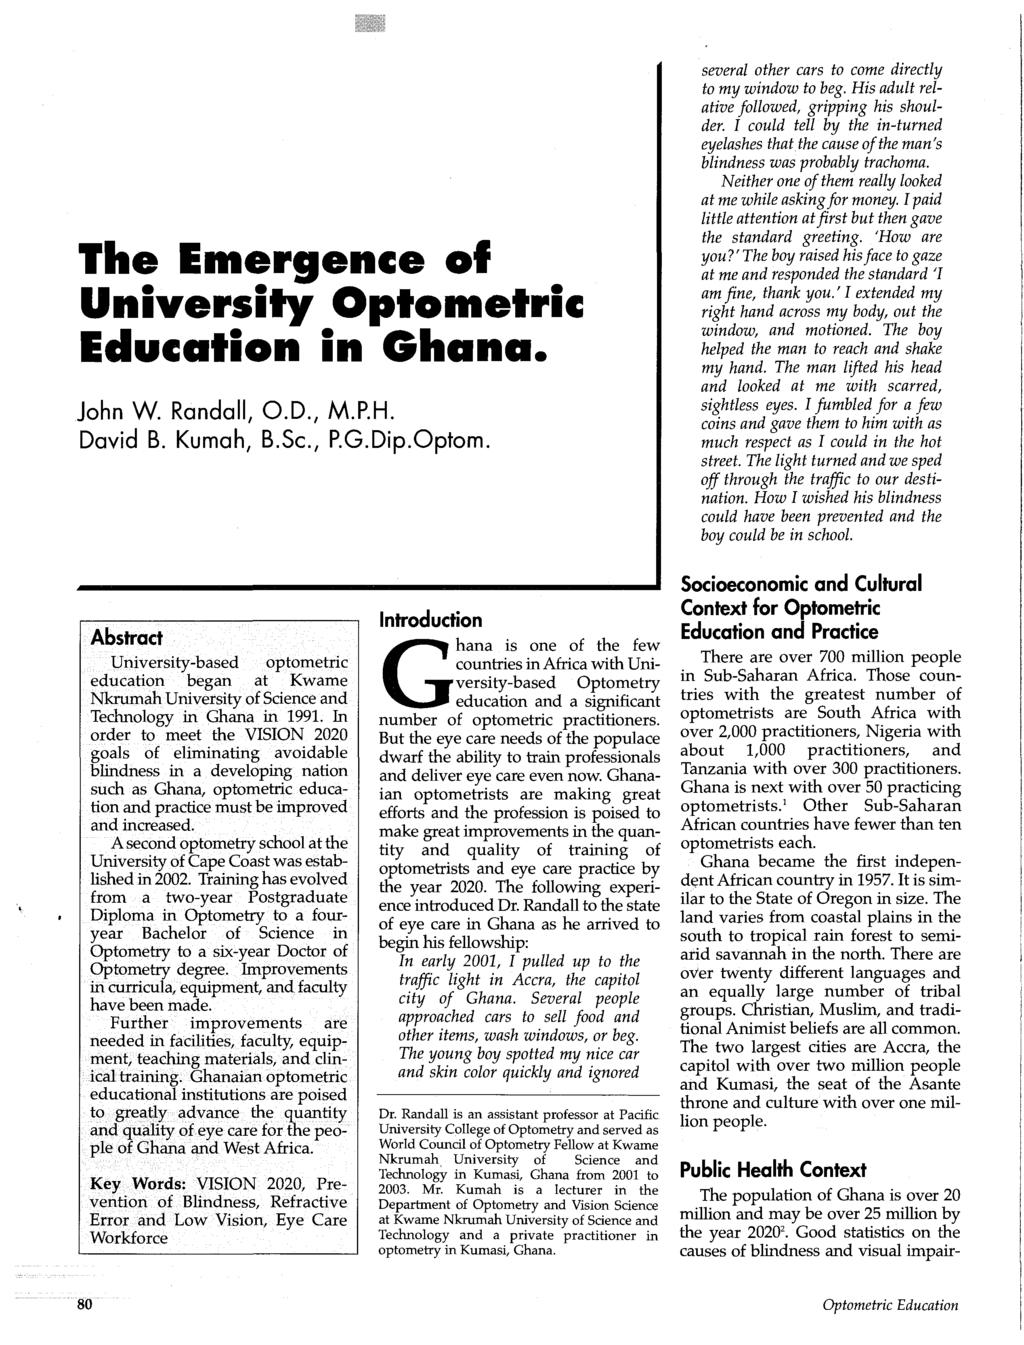 The Emergence of University Optometric Education in Ghana. John W. Randall, O.D., M.P.H. David B. Kumah, B.Sc, P.G.Dip.Optom. several other cars to come directly to my window to beg.